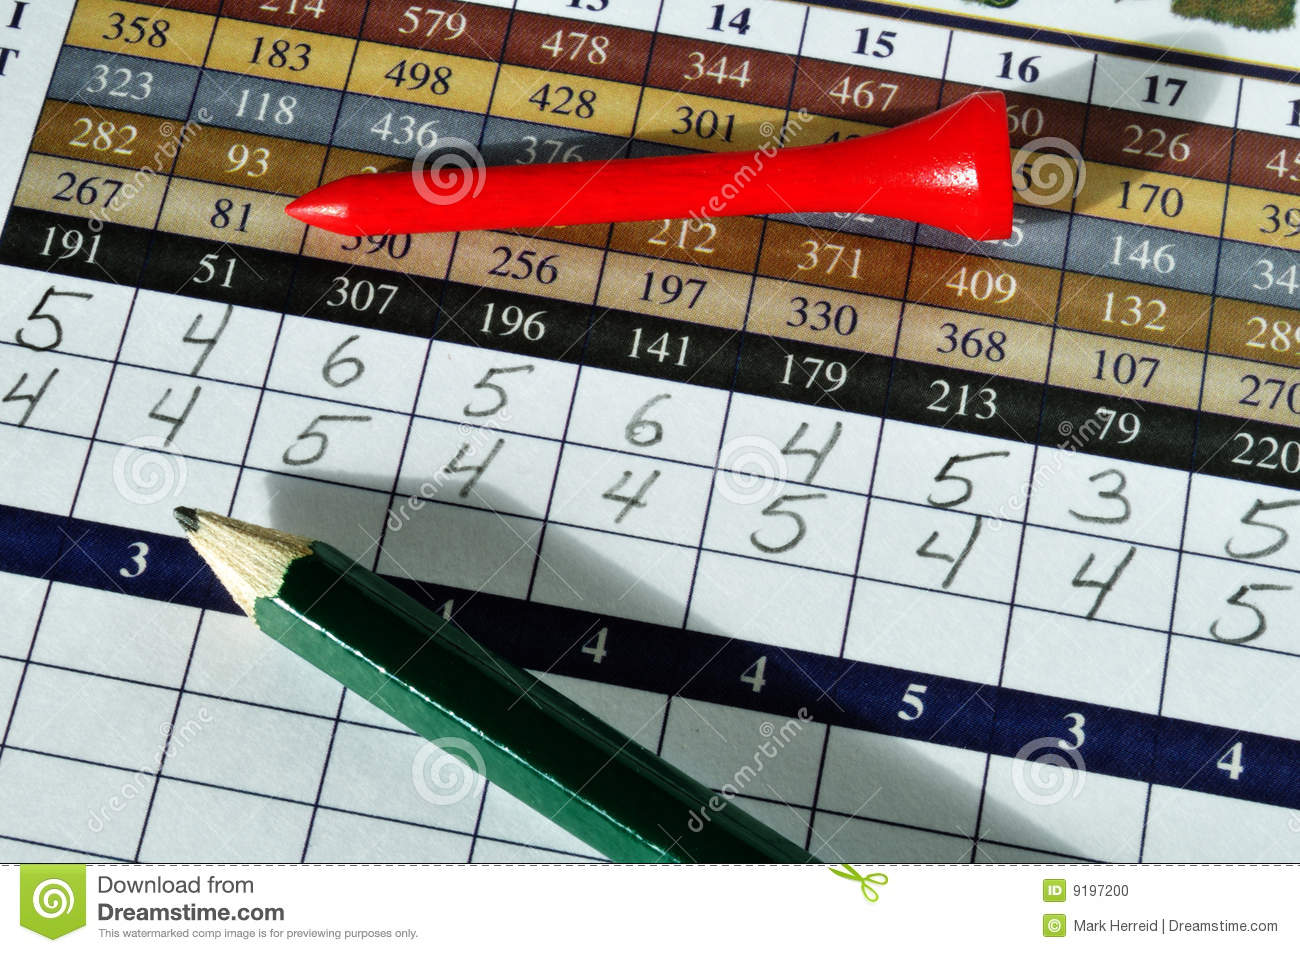 Free golf scorecard template excel image collections templates download example excel golf scorecard business invoice templates 100 golf scorecard template free balanced scorecard golf pronofoot35fo Images